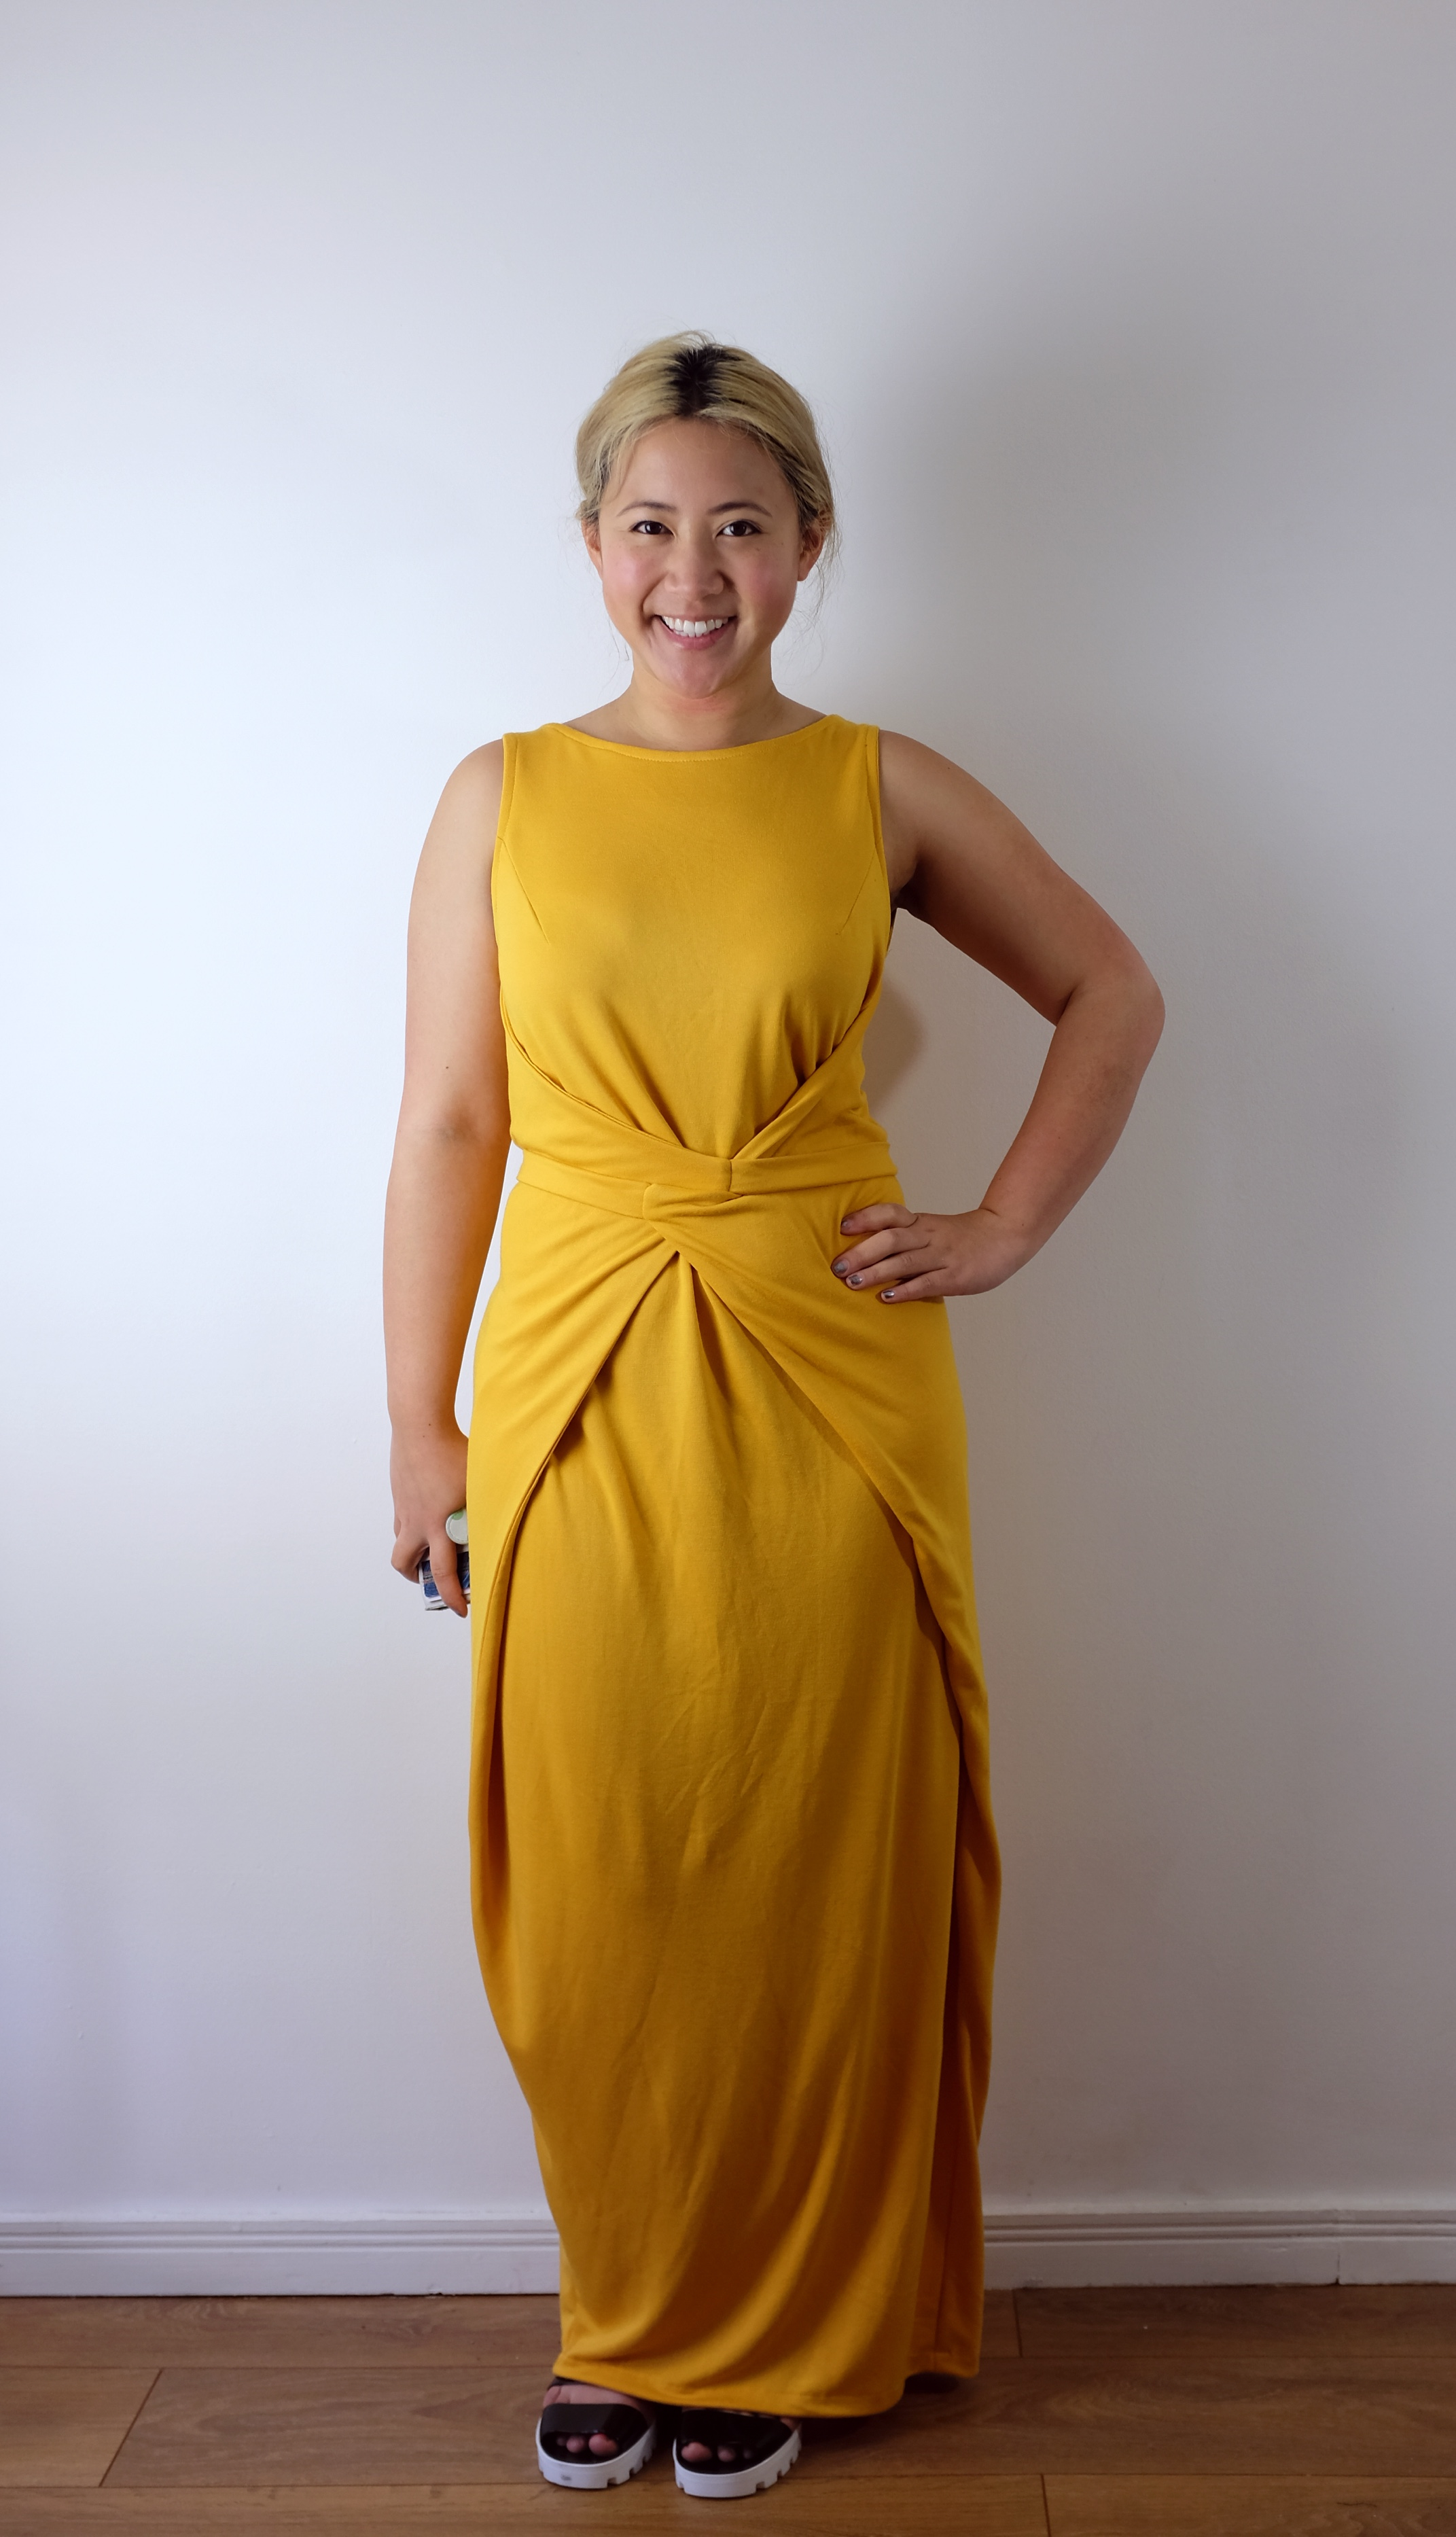 Kielo Dress Sewing Pattern Named Clothing Available From The